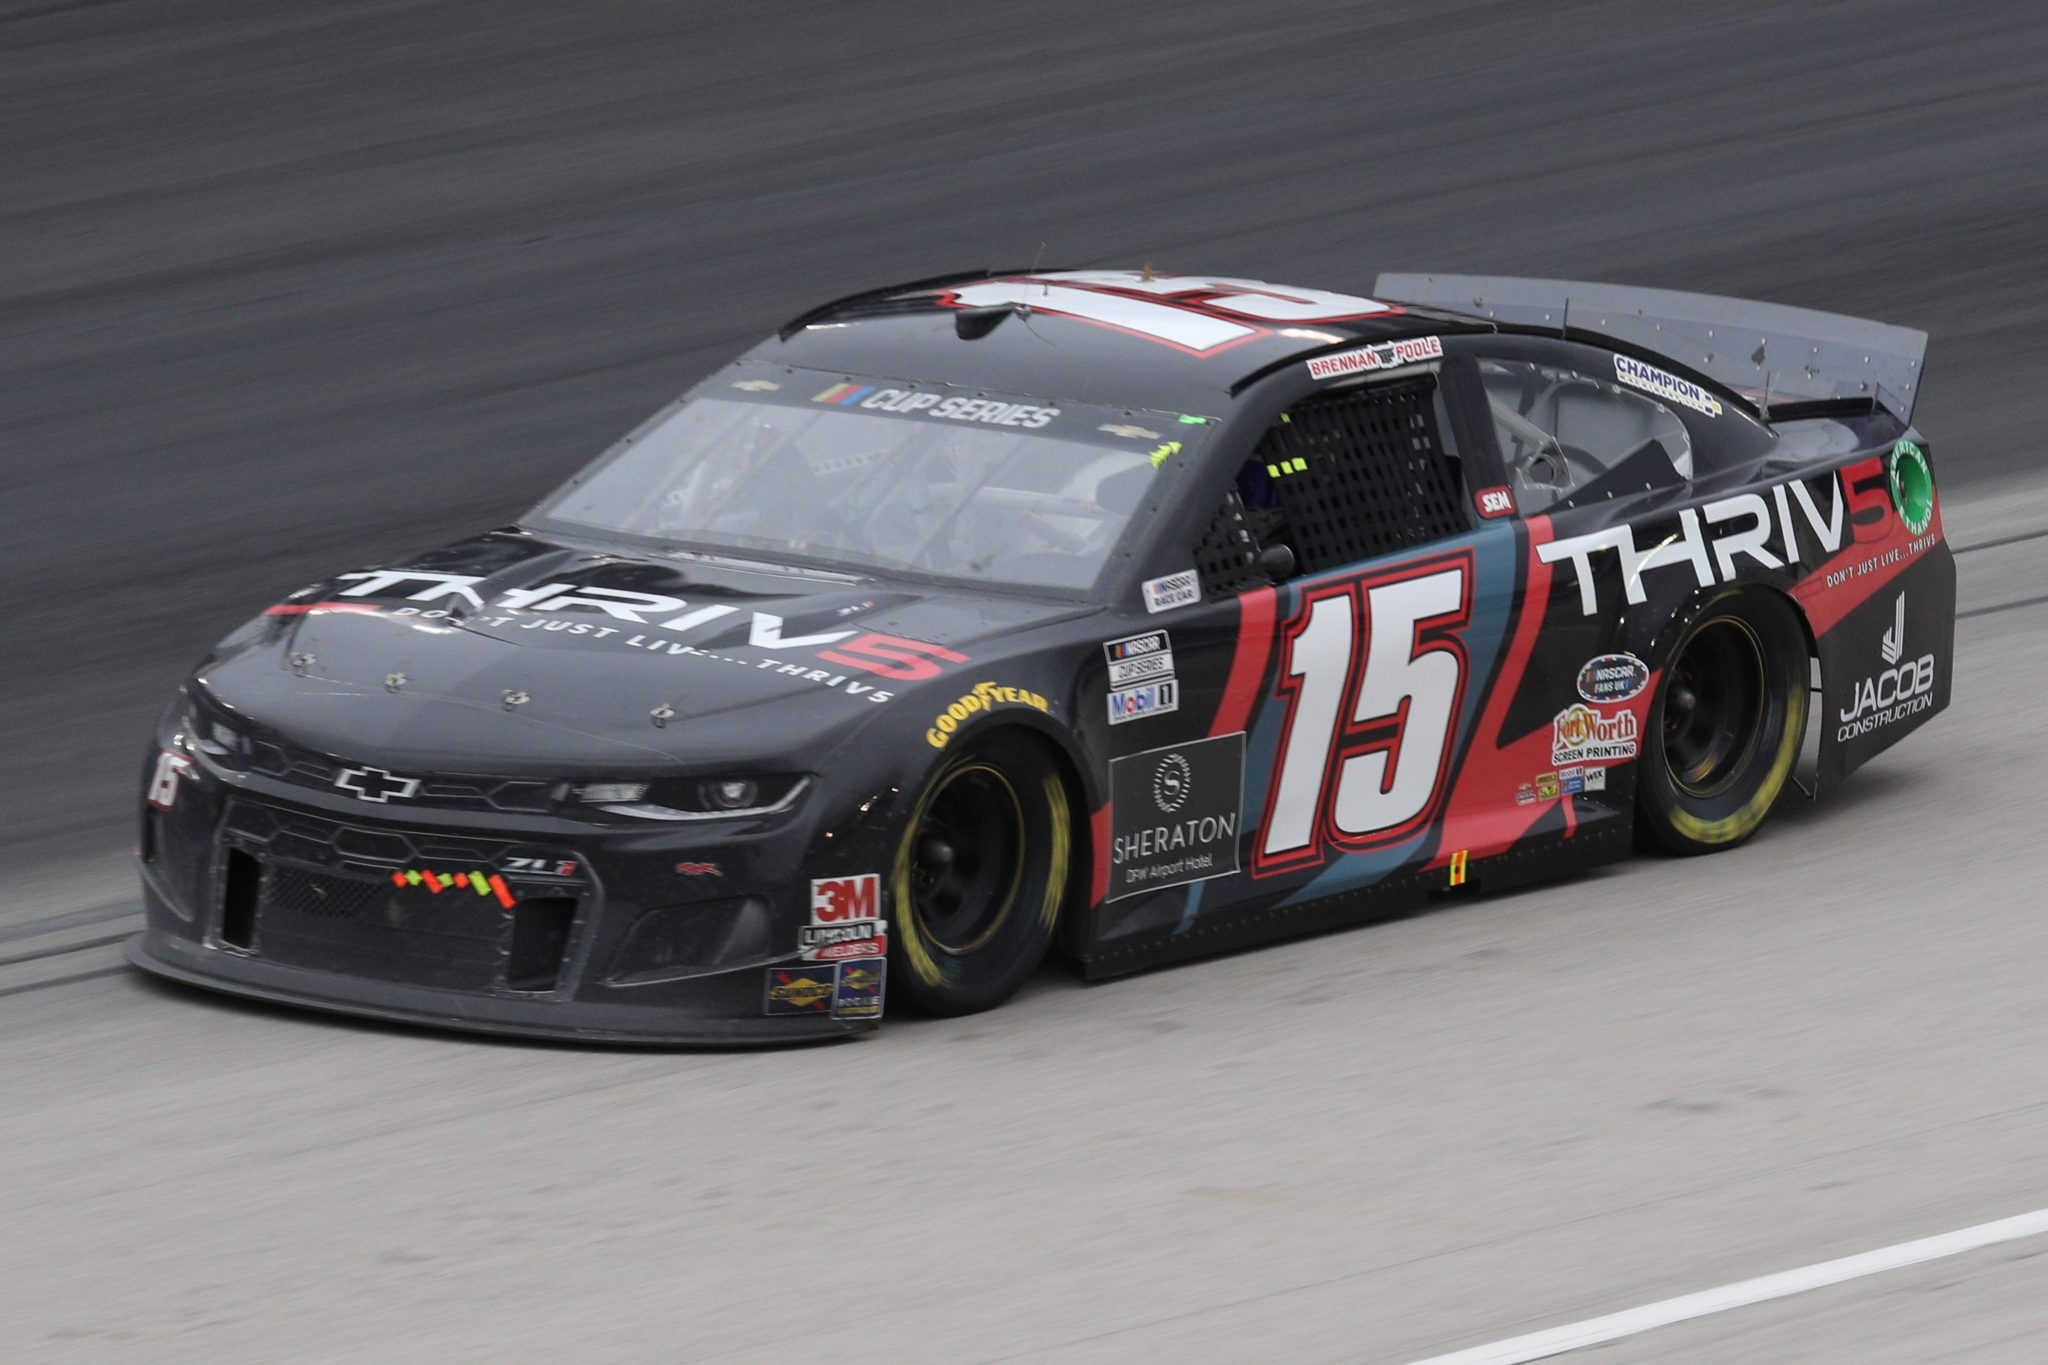 FORT WORTH, TEXAS - OCTOBER 28: Brennan Poole, driver of the #15 THRIV5 Chevrolet, drives during the NASCAR Cup Series Autotrader EchoPark Automotive 500 at Texas Motor Speedway on October 28, 2020 in Fort Worth, Texas. (Photo by Chris Graythen/Getty Images)   Getty Images